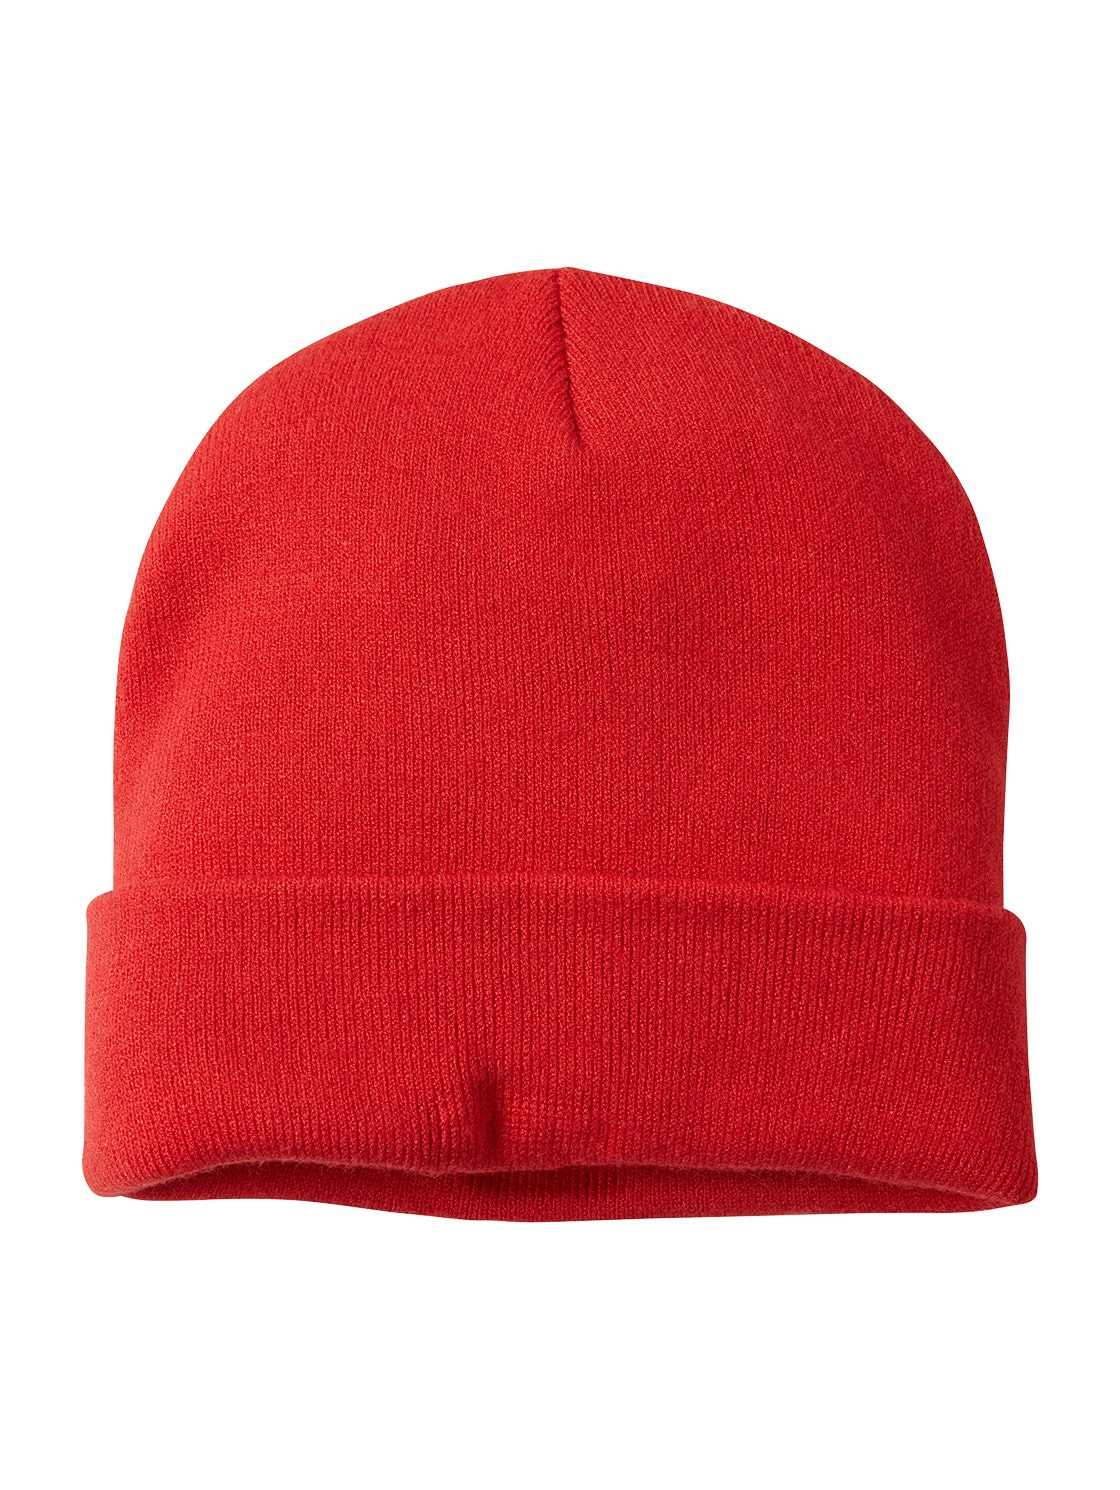 beanie, Scarlet Red                   Red